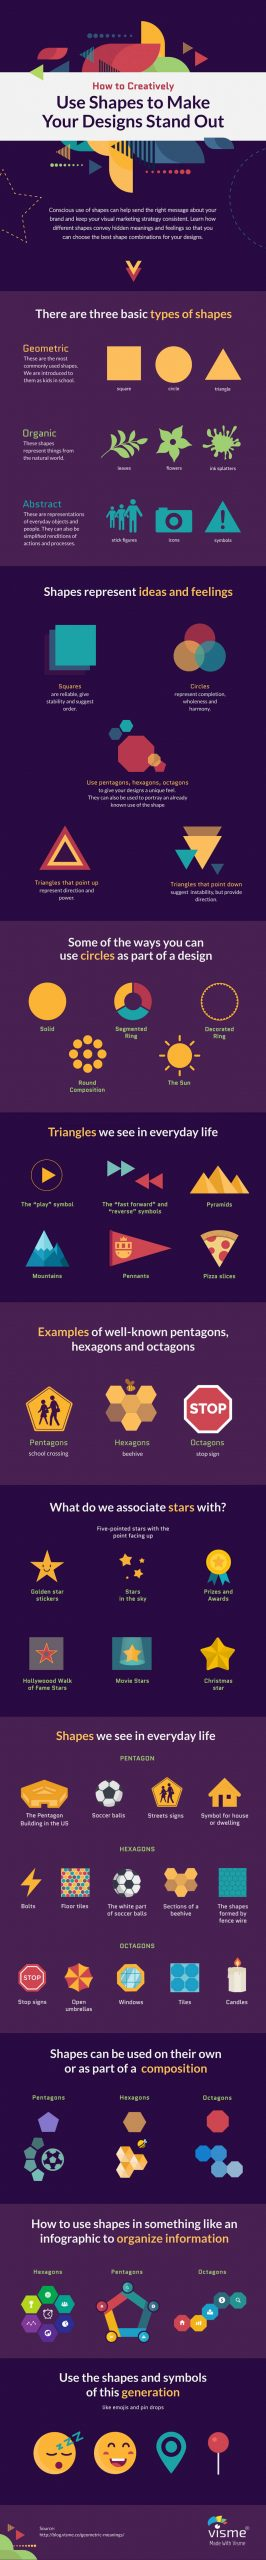 geometric meanings - infographic use shapes